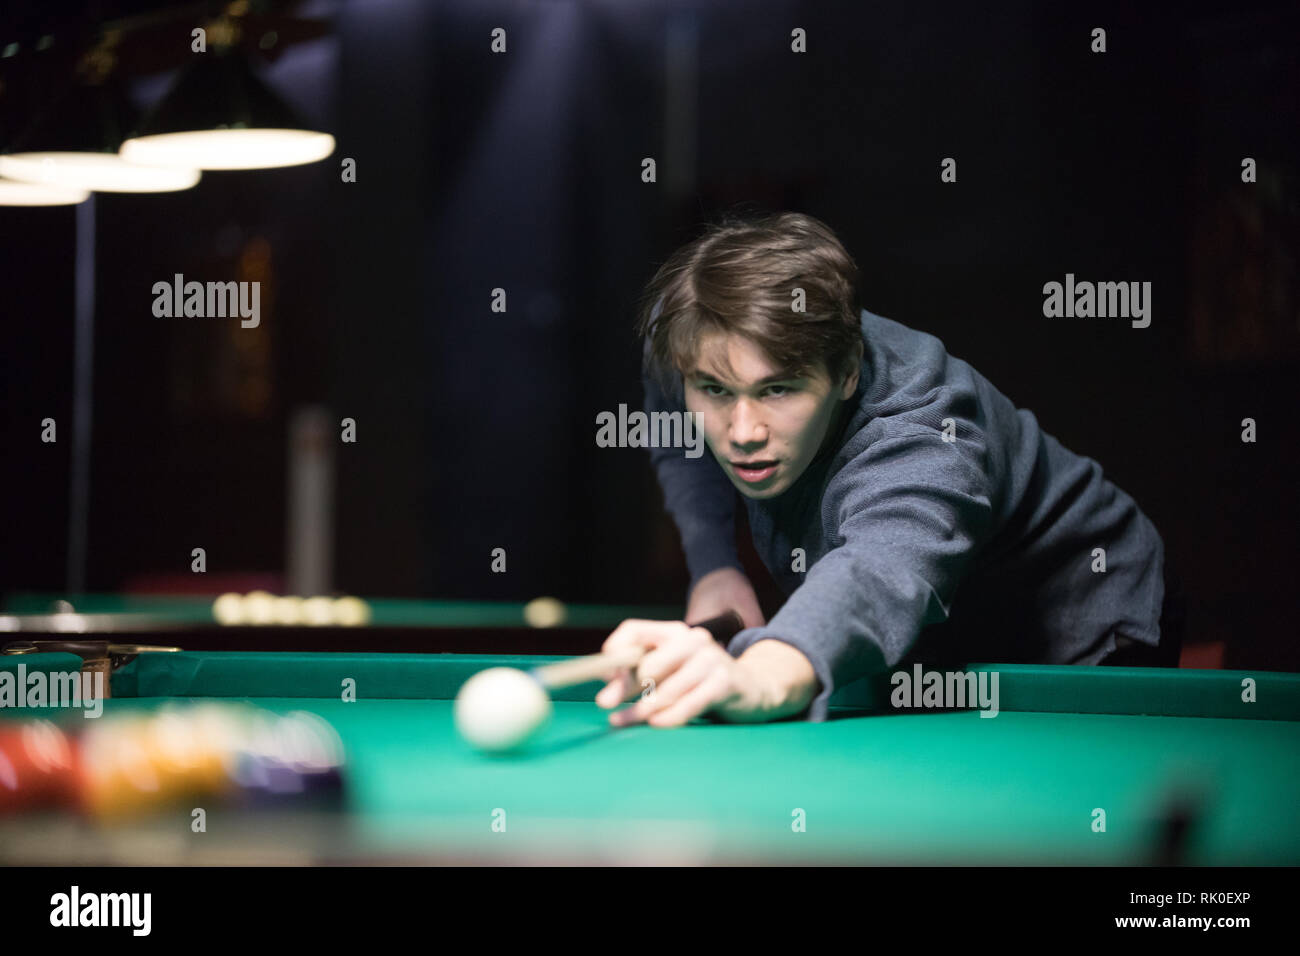 Entertainment concept. Concentrated young man playing billiard - Stock Image